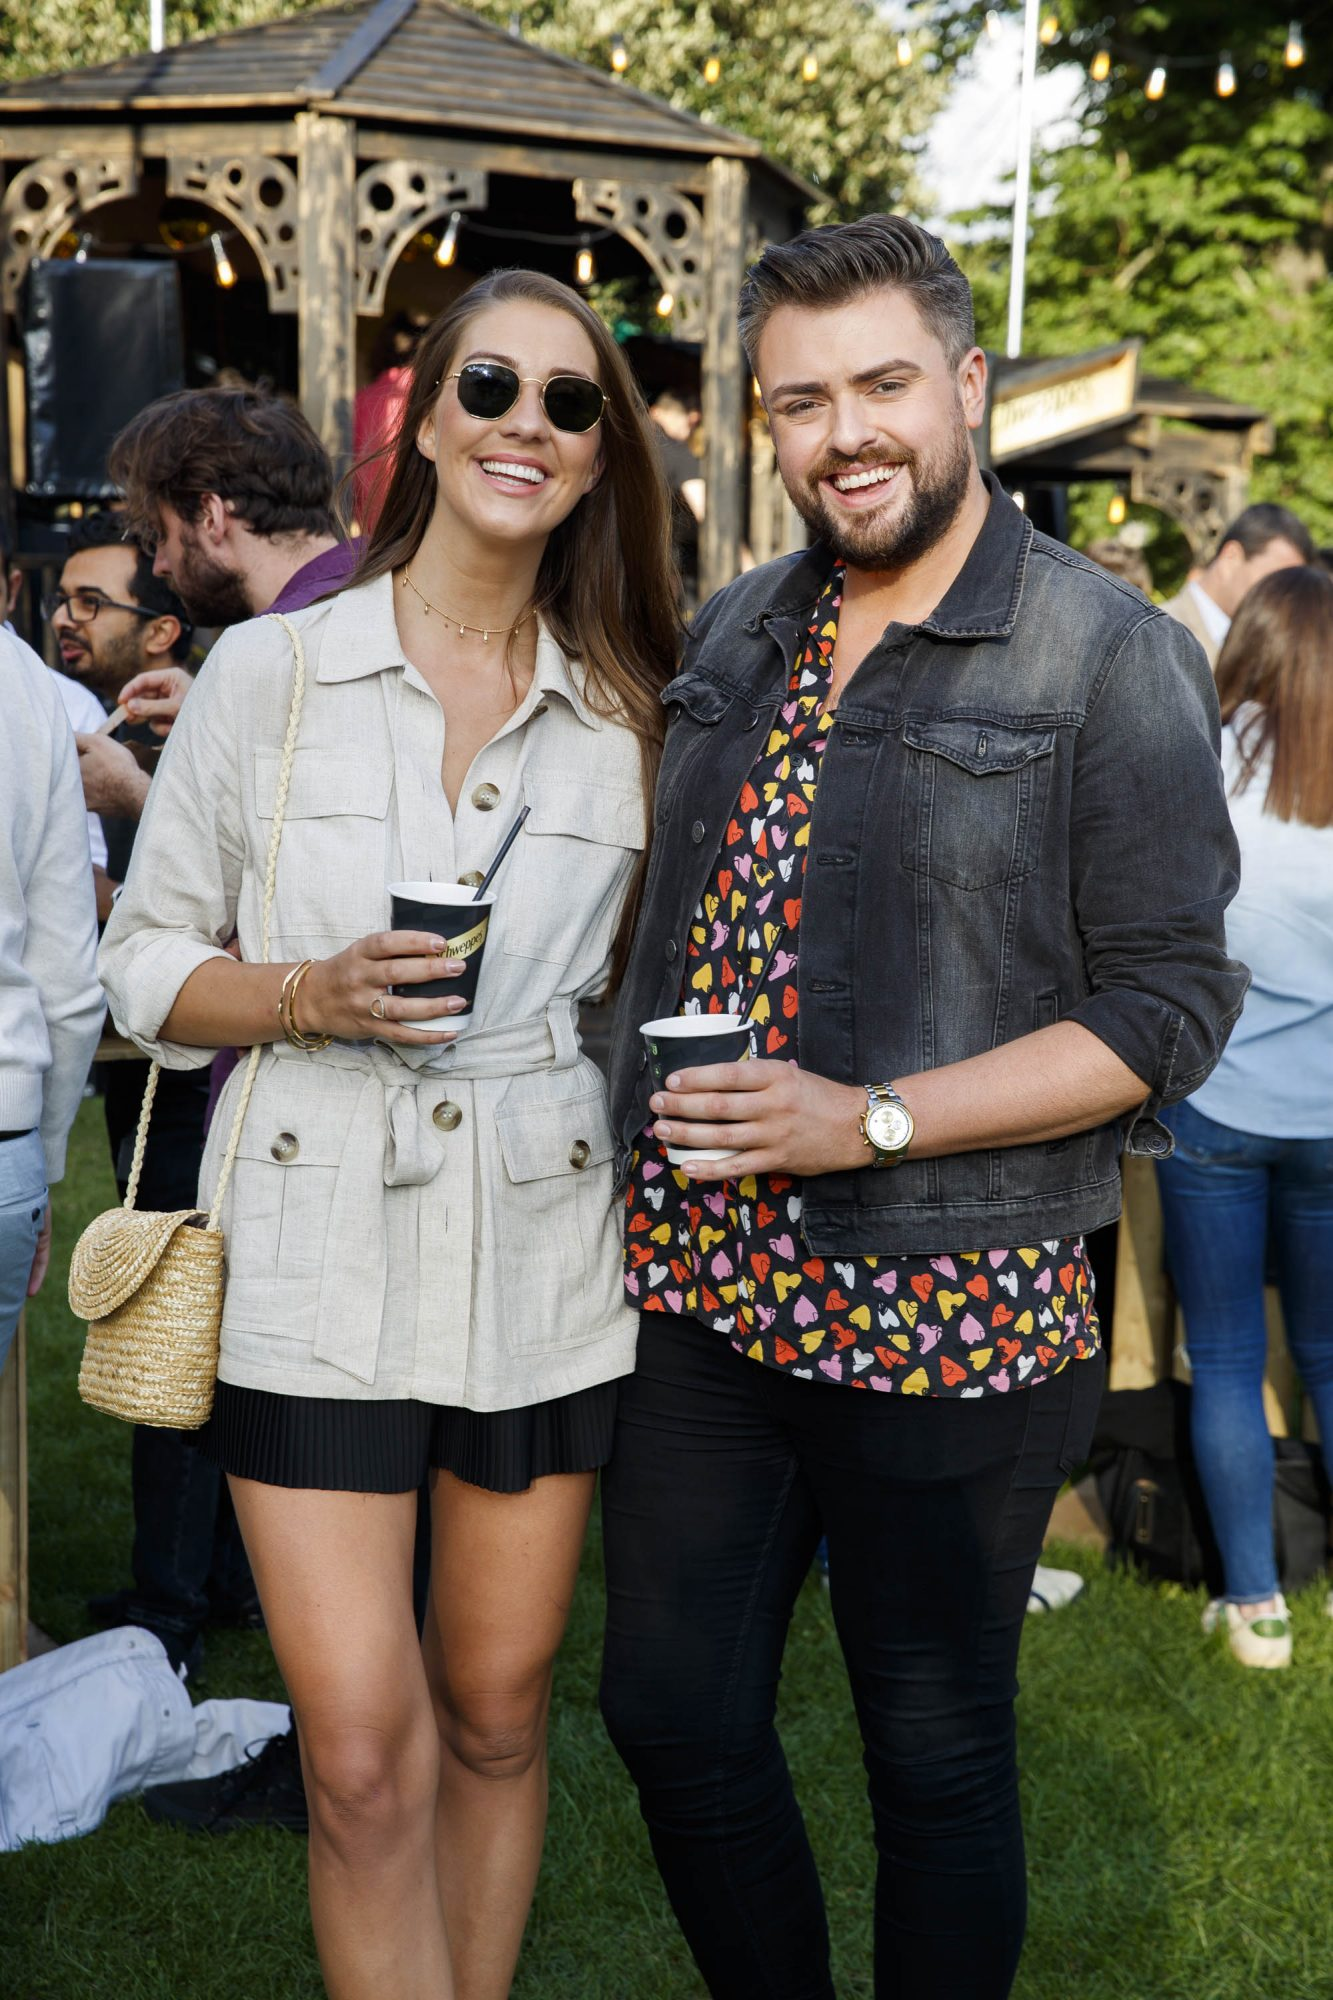 Clémentine MacNeice and James Patrice at the Schweppes #UltimateMixer Sessions at The Big Grill festival in Herbert Park, Dublin, where guests sipped on expertly crafted cocktails and enjoyed live music mixes from Irish bands and DJs. Picture: Andres Poveda